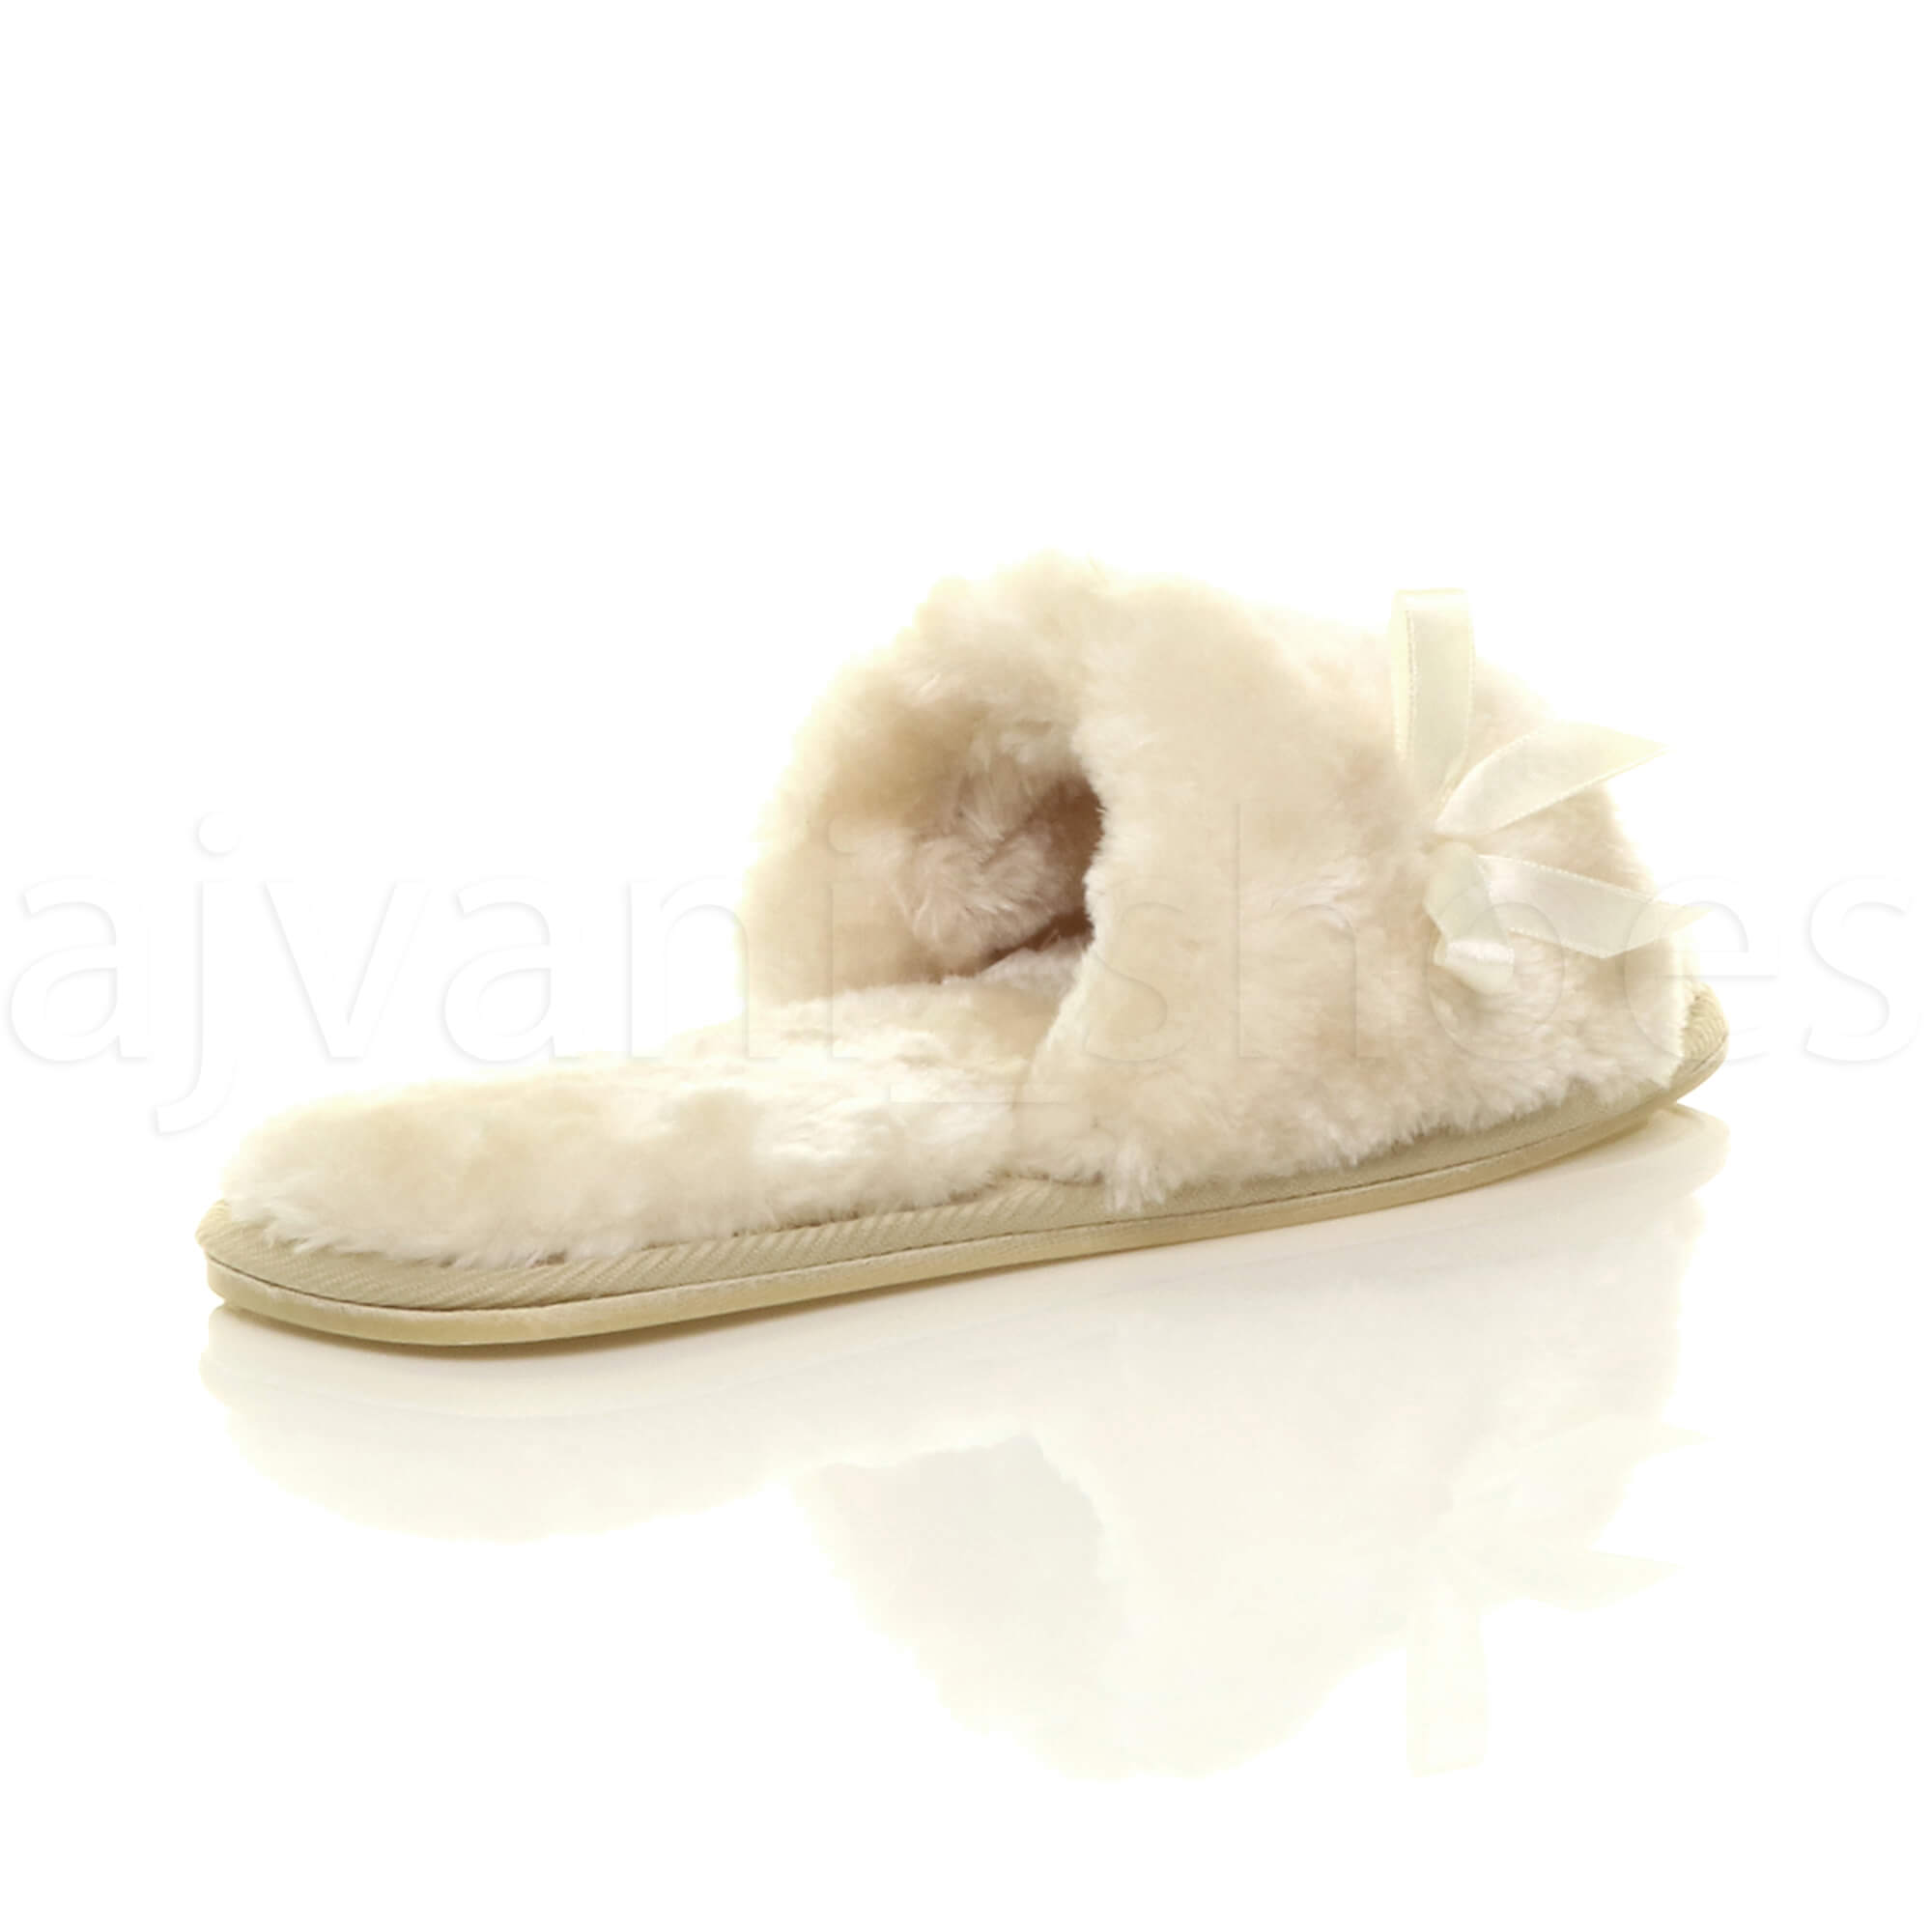 WOMENS-LADIES-FLAT-PEEP-TOE-BOW-LUXURY-COSY-FUR-LINED-SLIP-ON-SLIPPERS-SIZE thumbnail 5